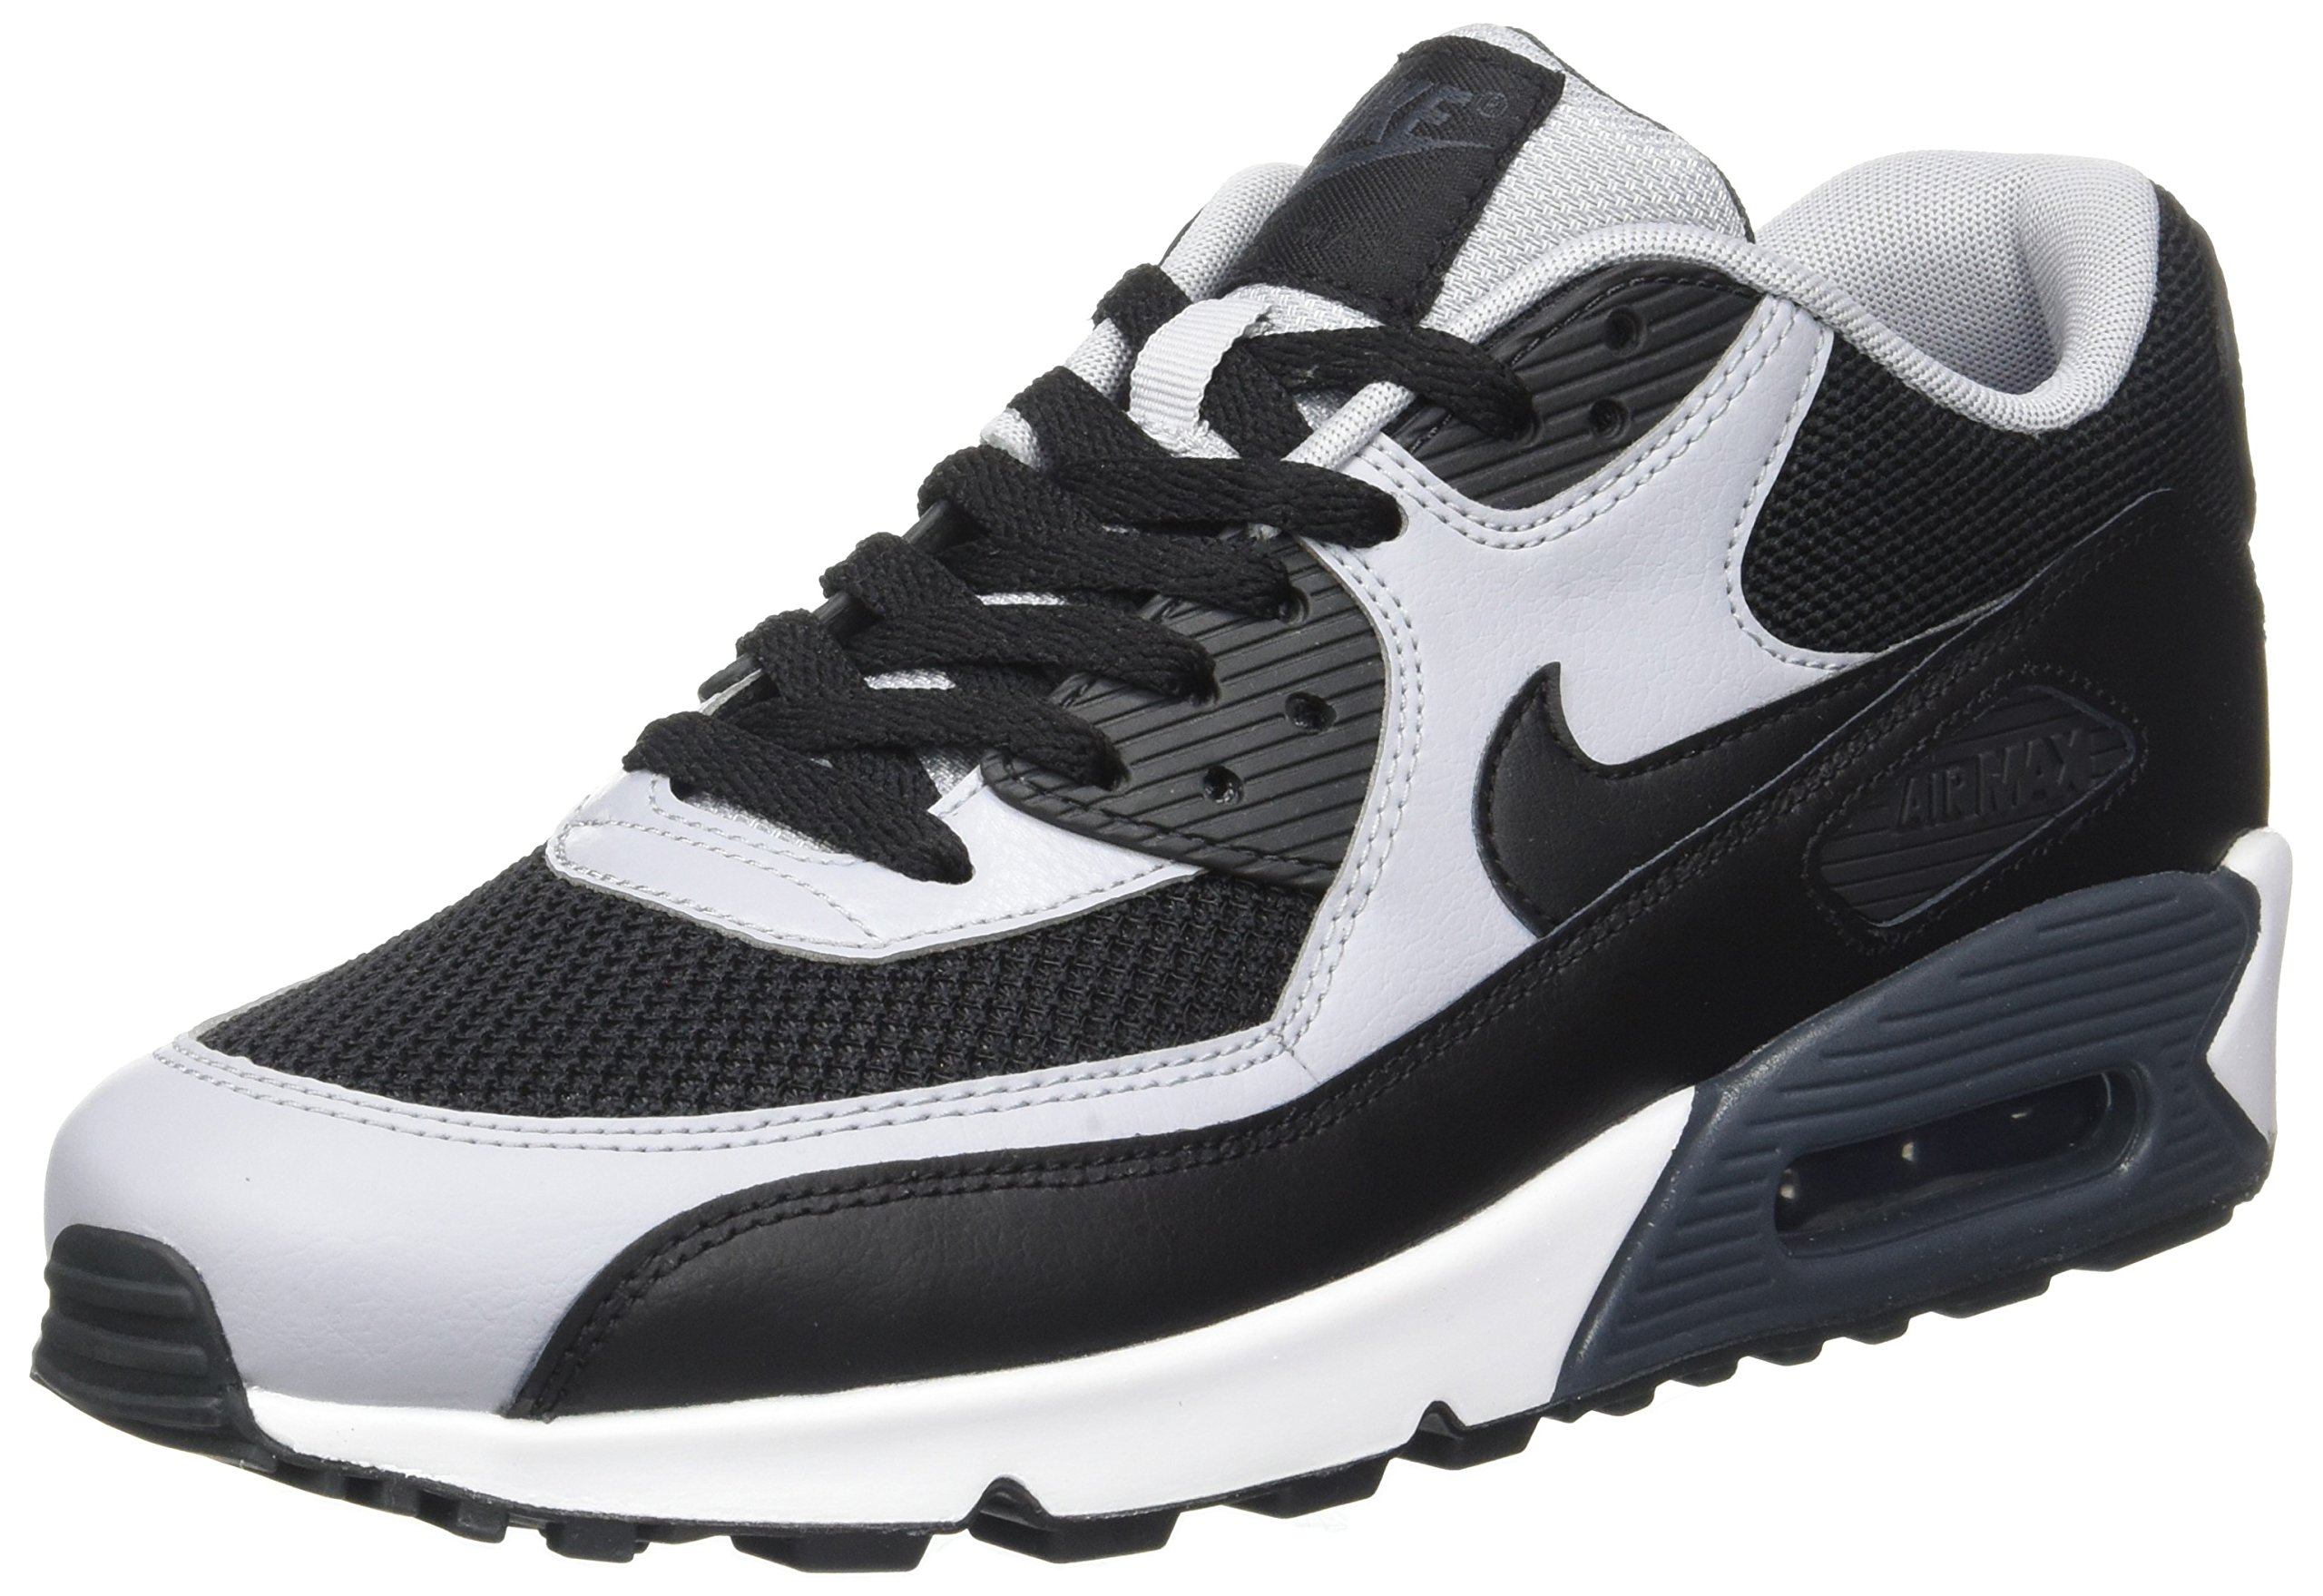 outlet store fafc4 18f63 Galleon - NIKE Men s Air Max 90 Essential Low-Top Sneakers Shoes(Black Grey    105)